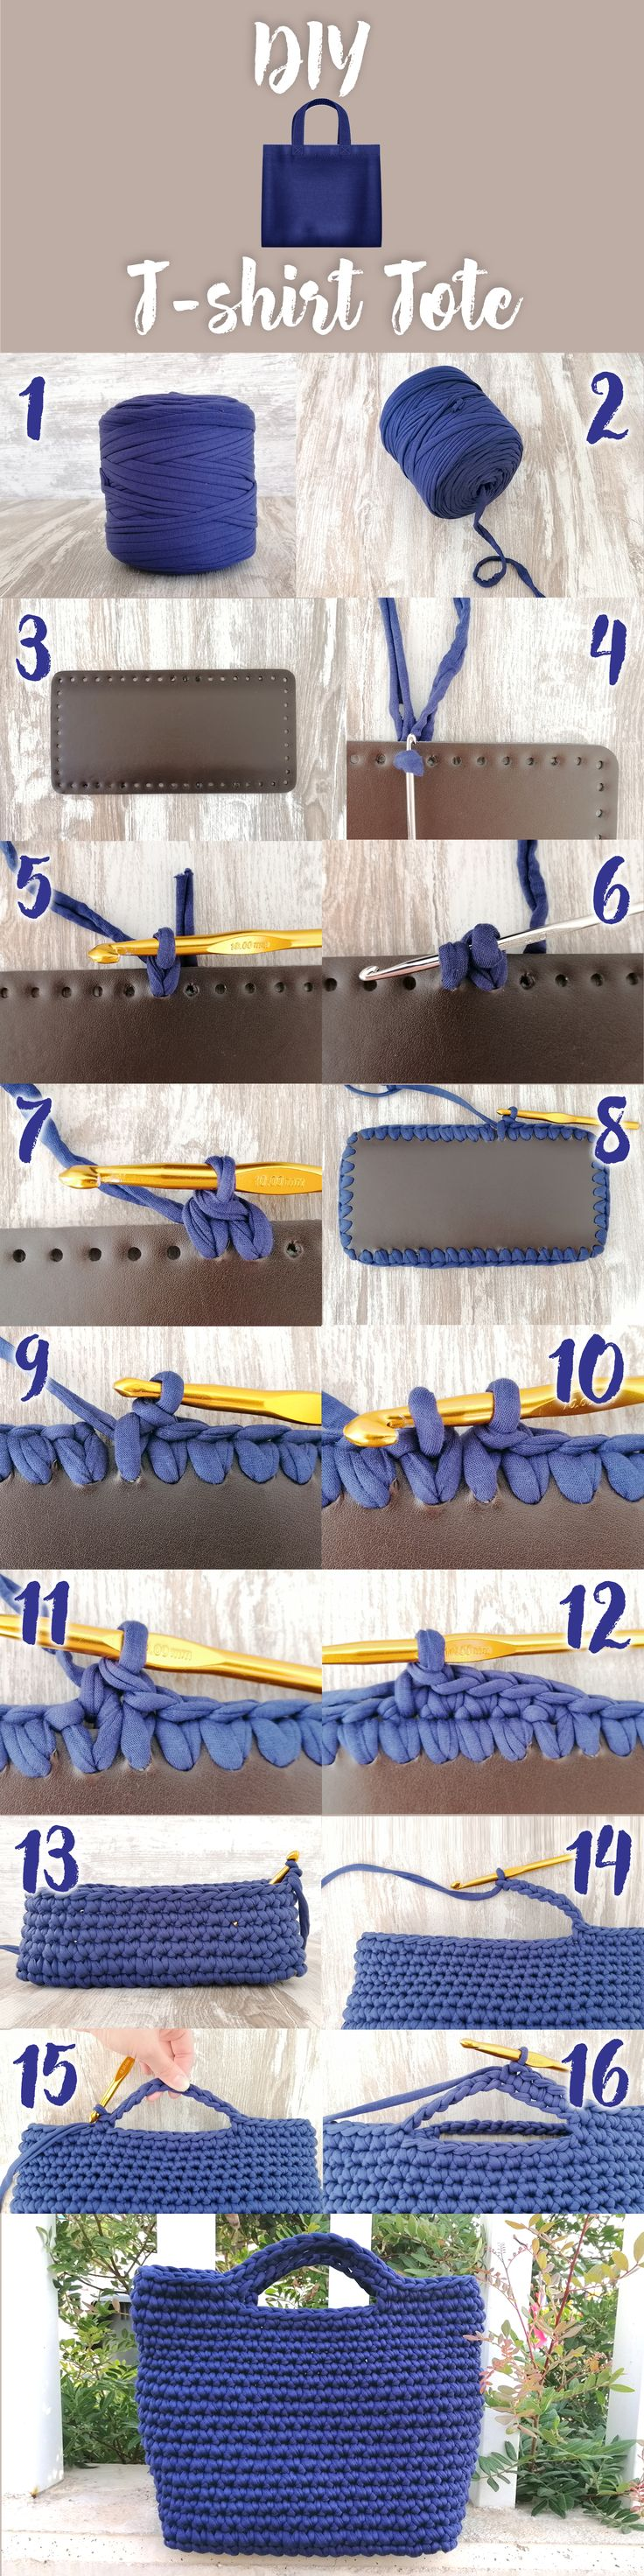 How To Crochet A Bag Step By Step Using T-shirt Yarn